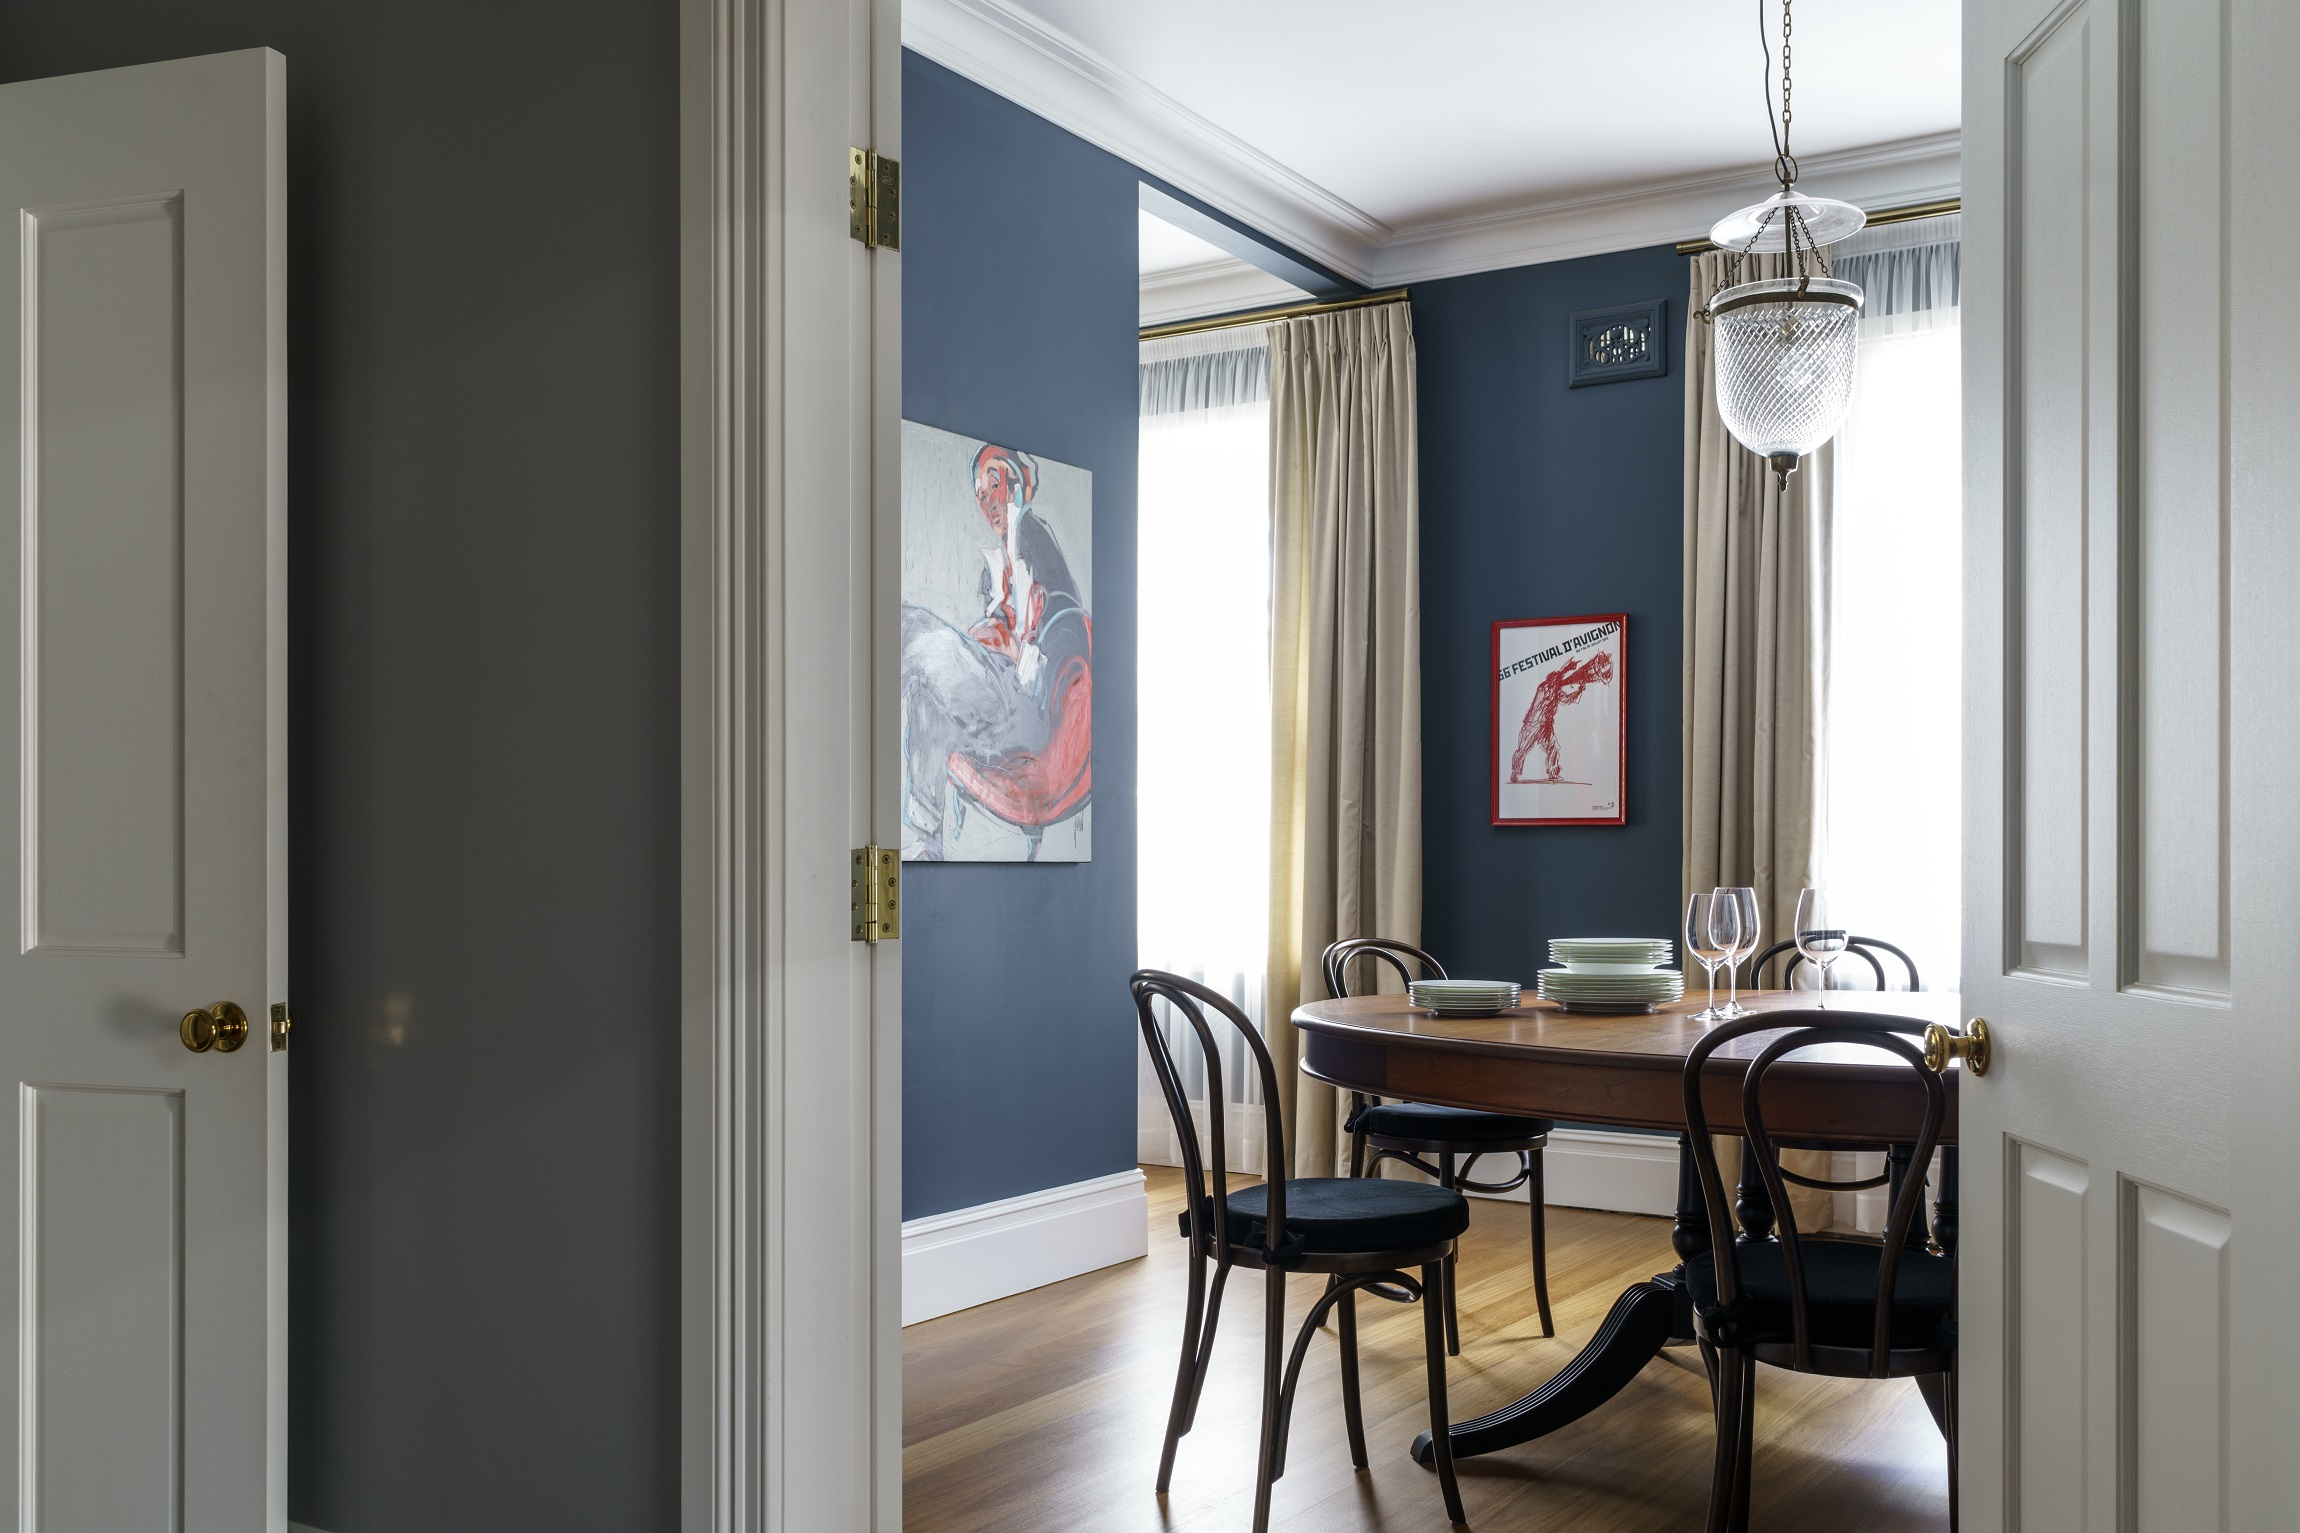 100-Year-Old-Heritage-Home-Restoration-Dining-Art-Michael-Bell-Architects-Sydney